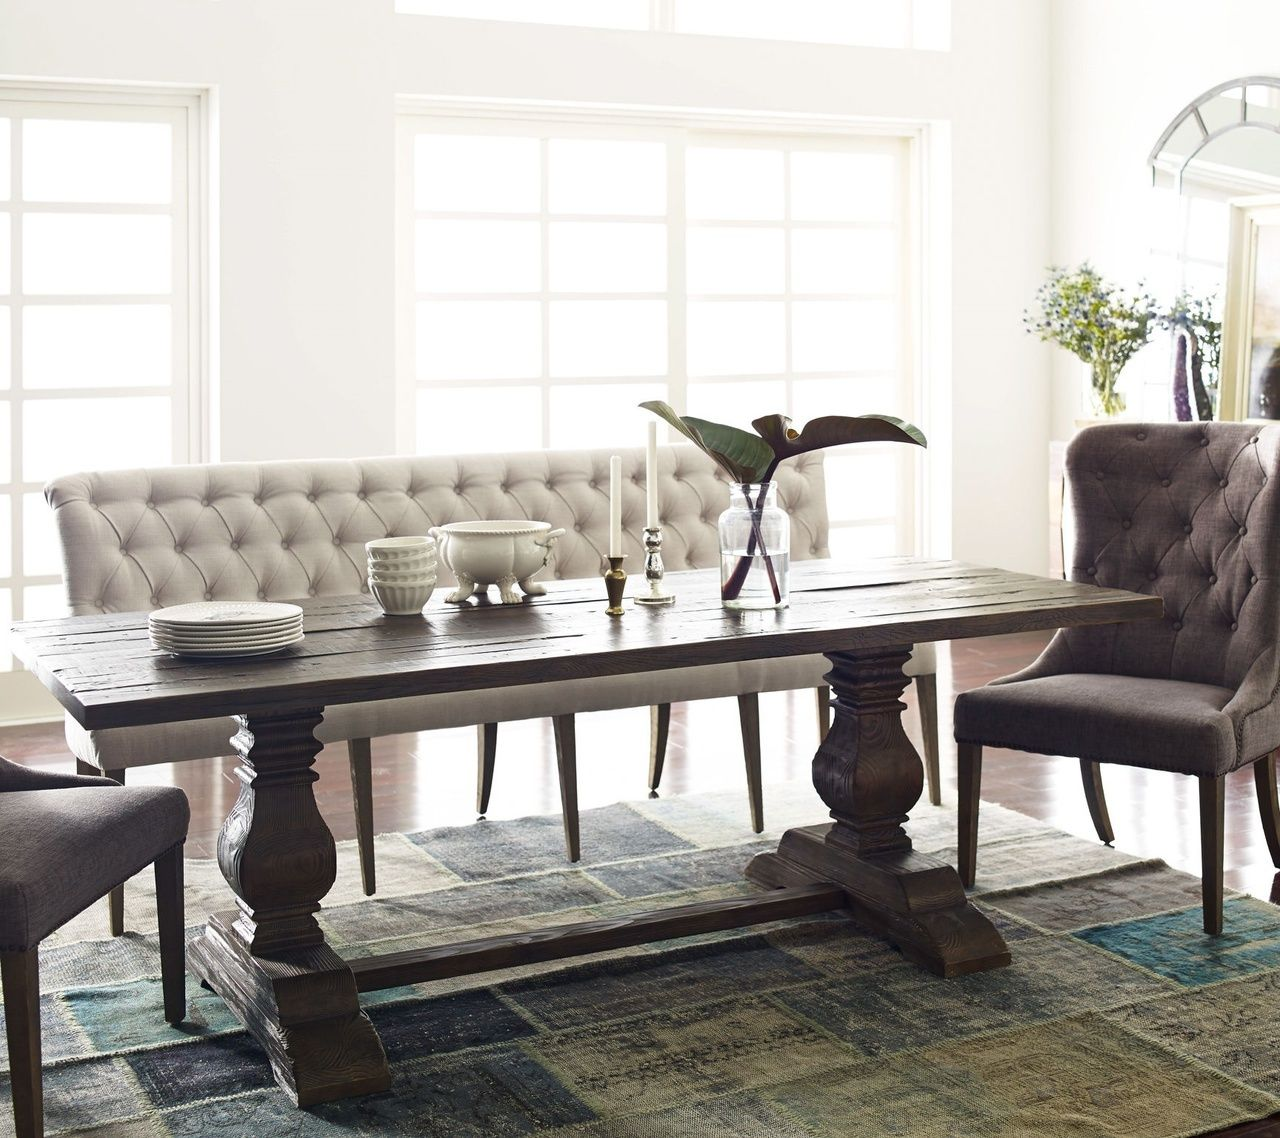 High Bench Table French Tufted Upholstered Dining Bench Banquette In 2019